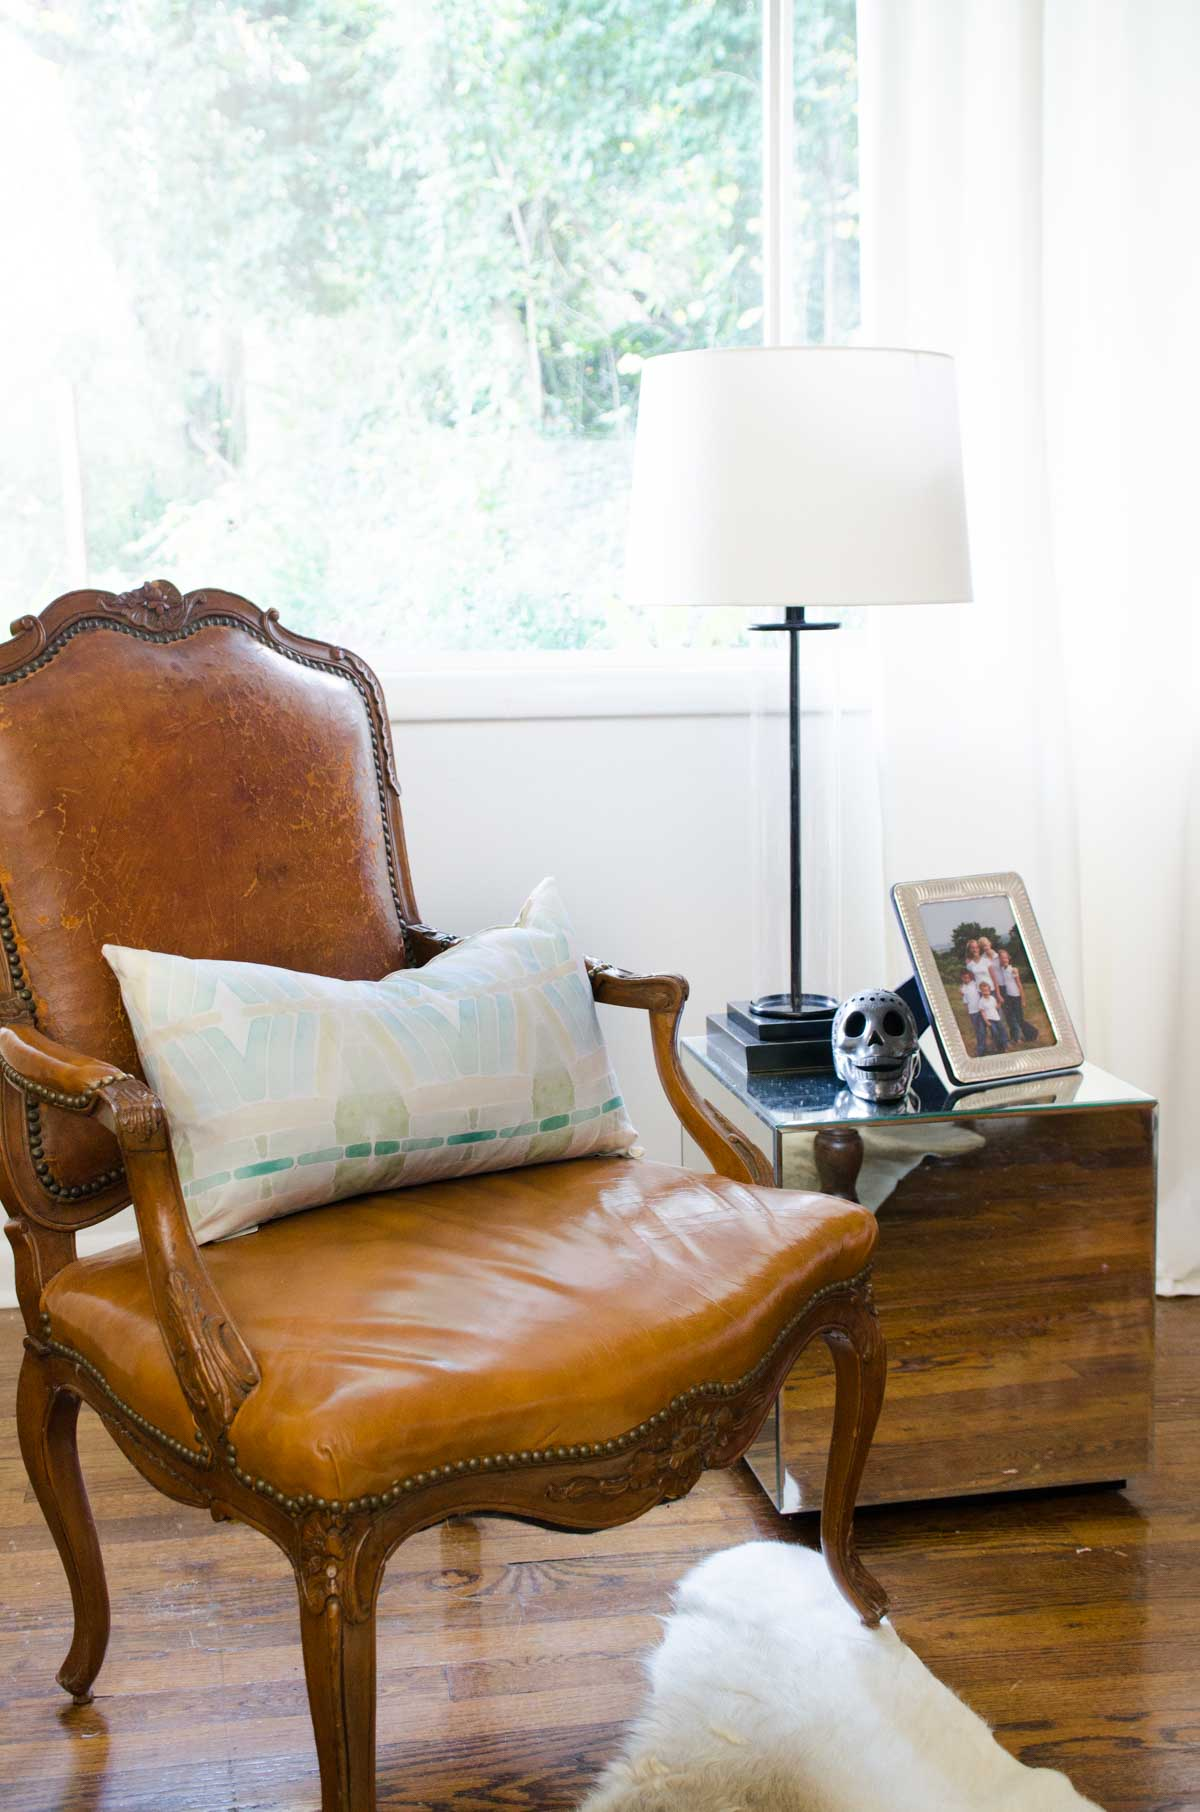 one room challenge living reveal thou swell dsc nate berkus glass agate accent table thouswellblog makeover mixing traditional and modern design elements high kitchen chairs